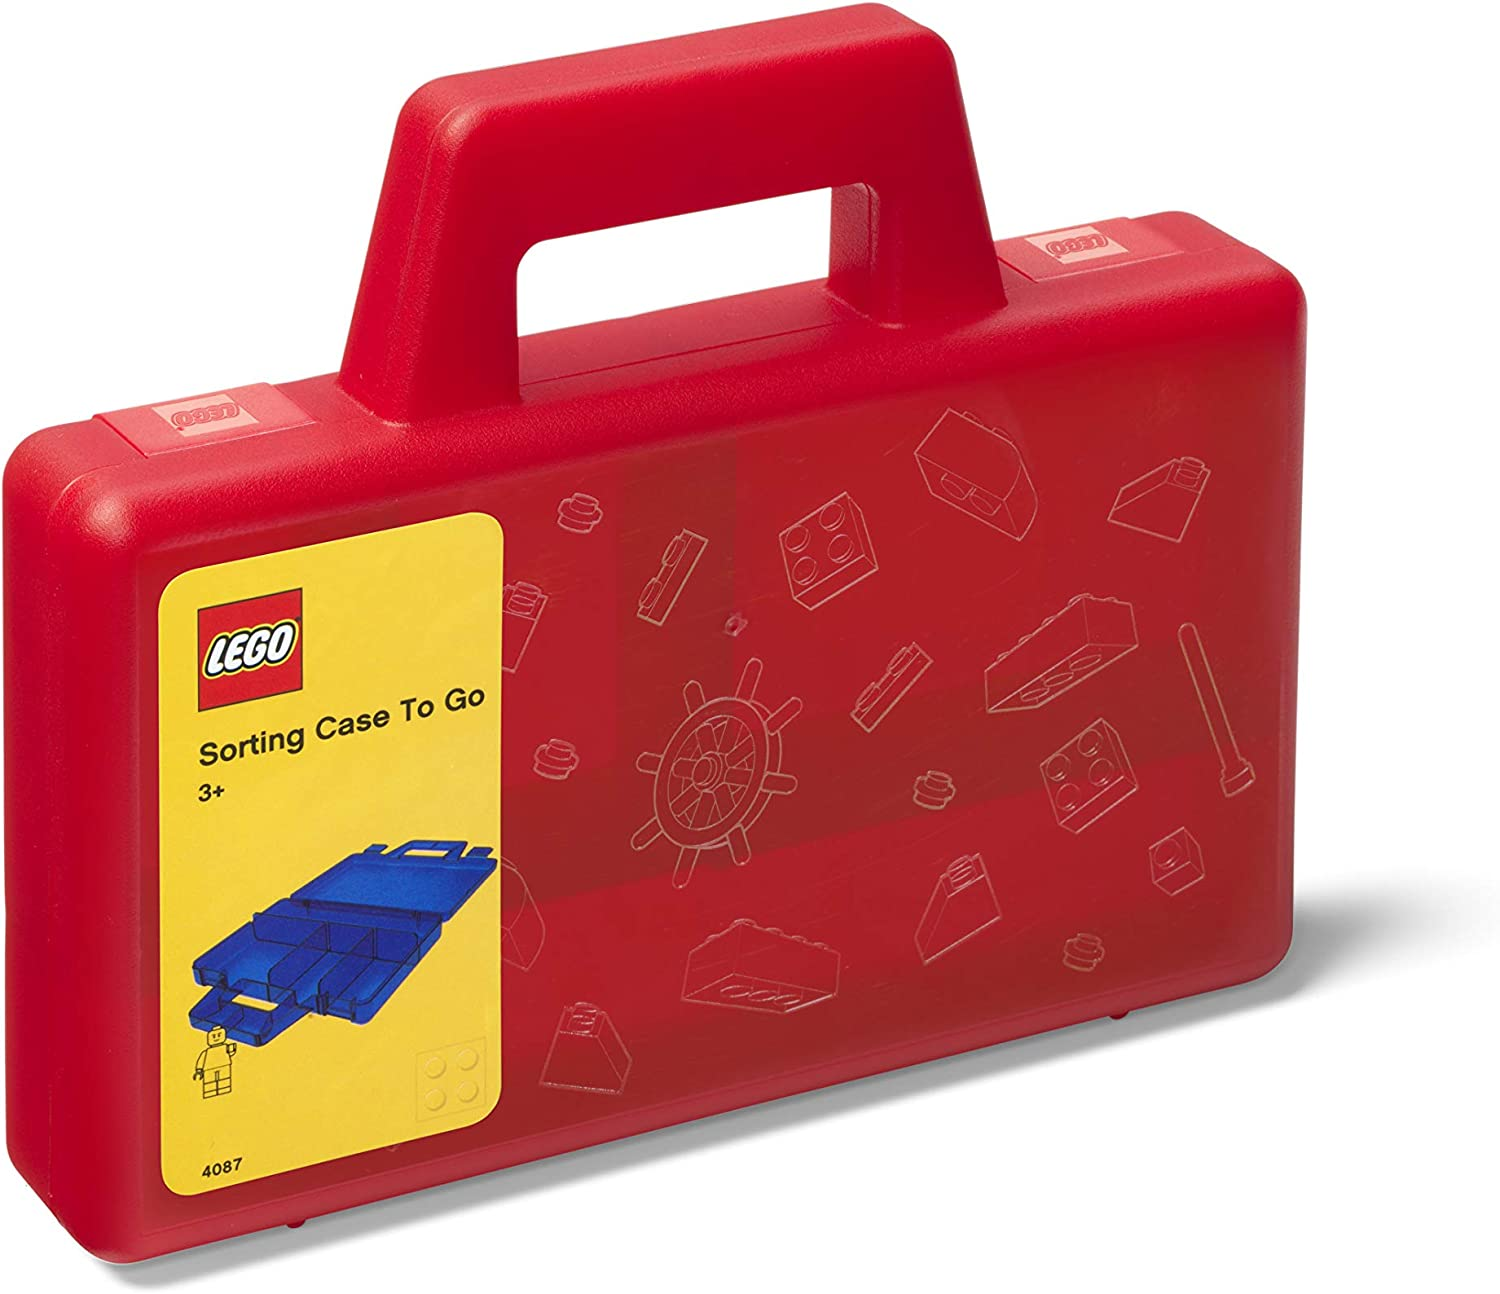 LEGO 40870001 Sorting Case to Go, Red